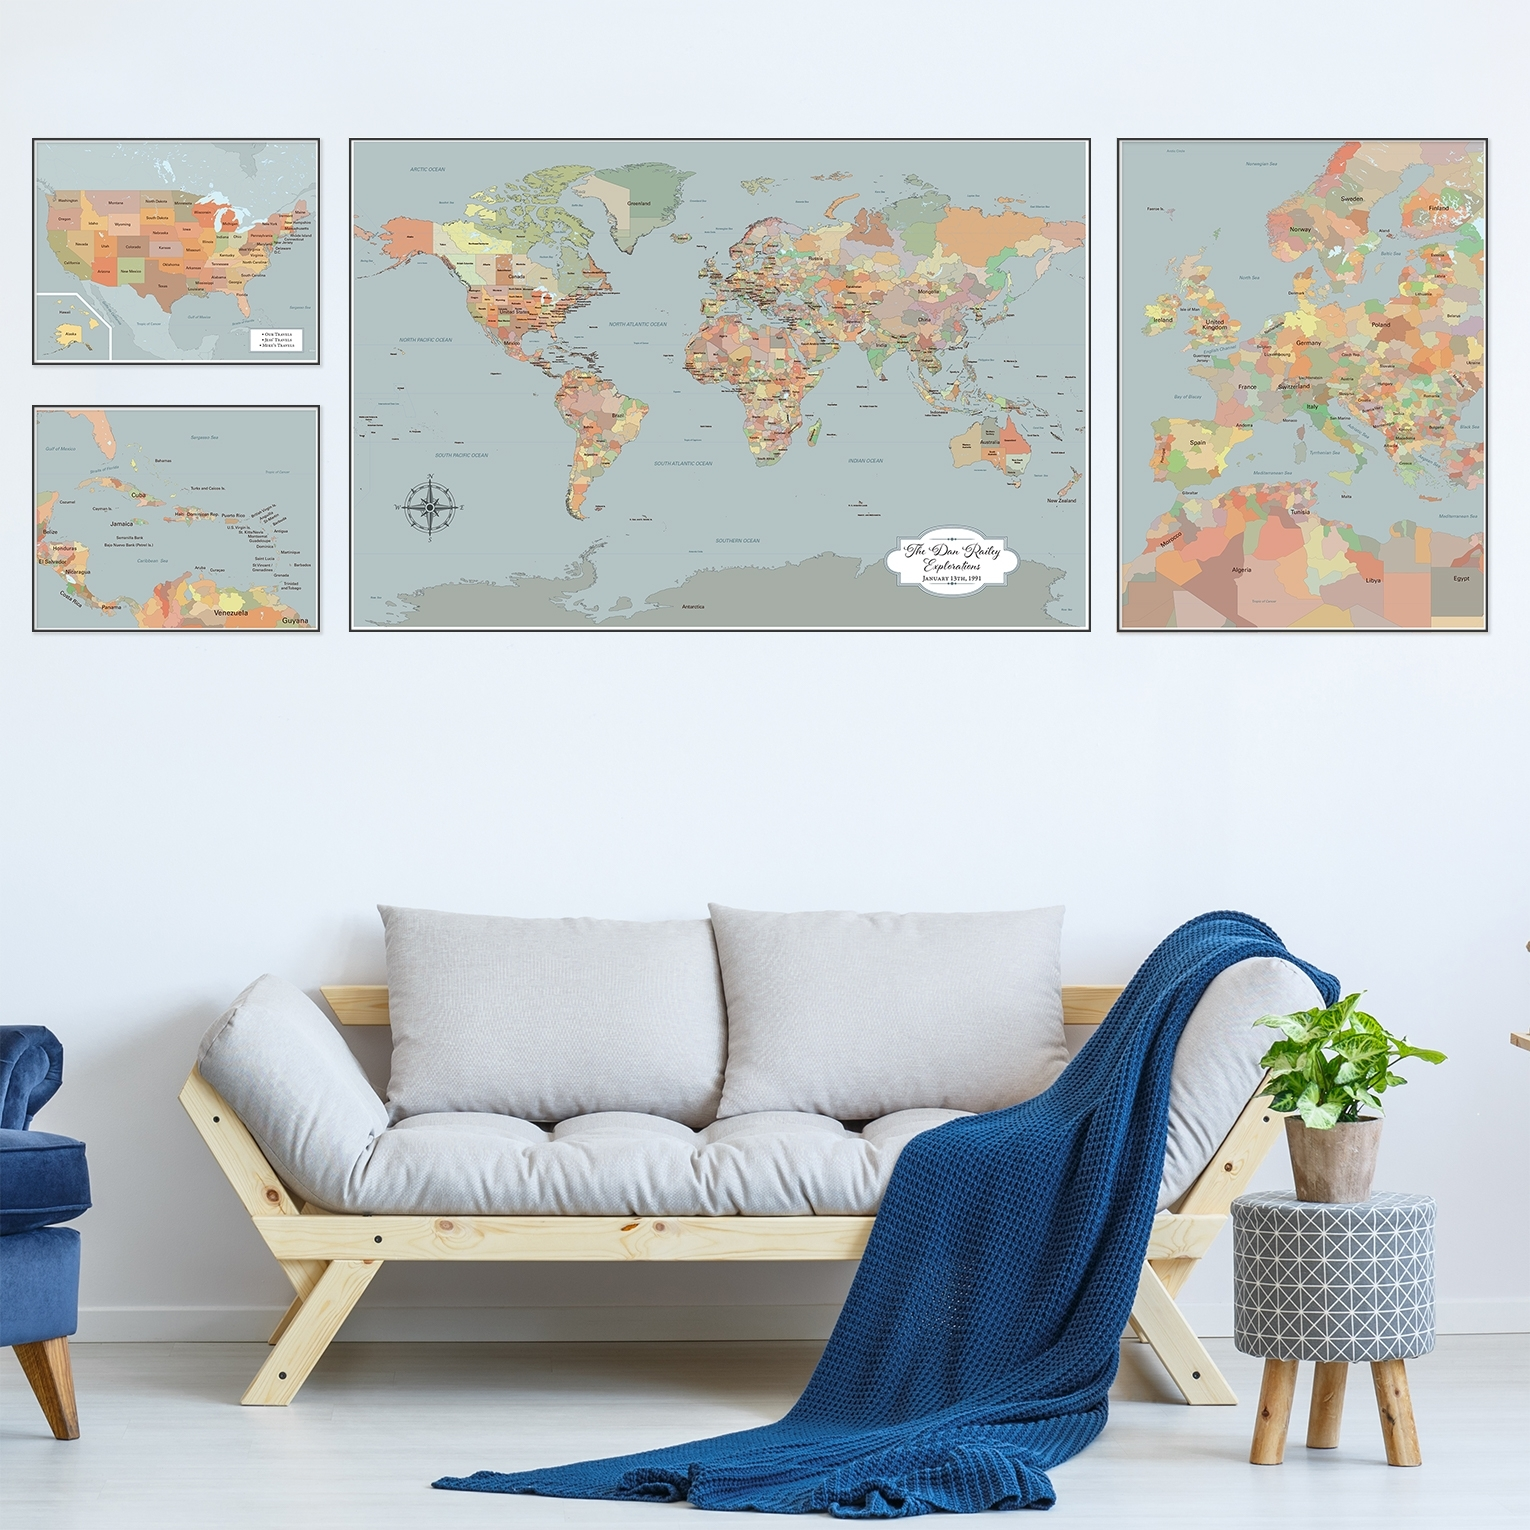 Large World Map Wall Art, Set Of 4 Push Pin Maps With Pins, Personalized Intended For Recent Large Coastal Wall Art (Gallery 19 of 20)